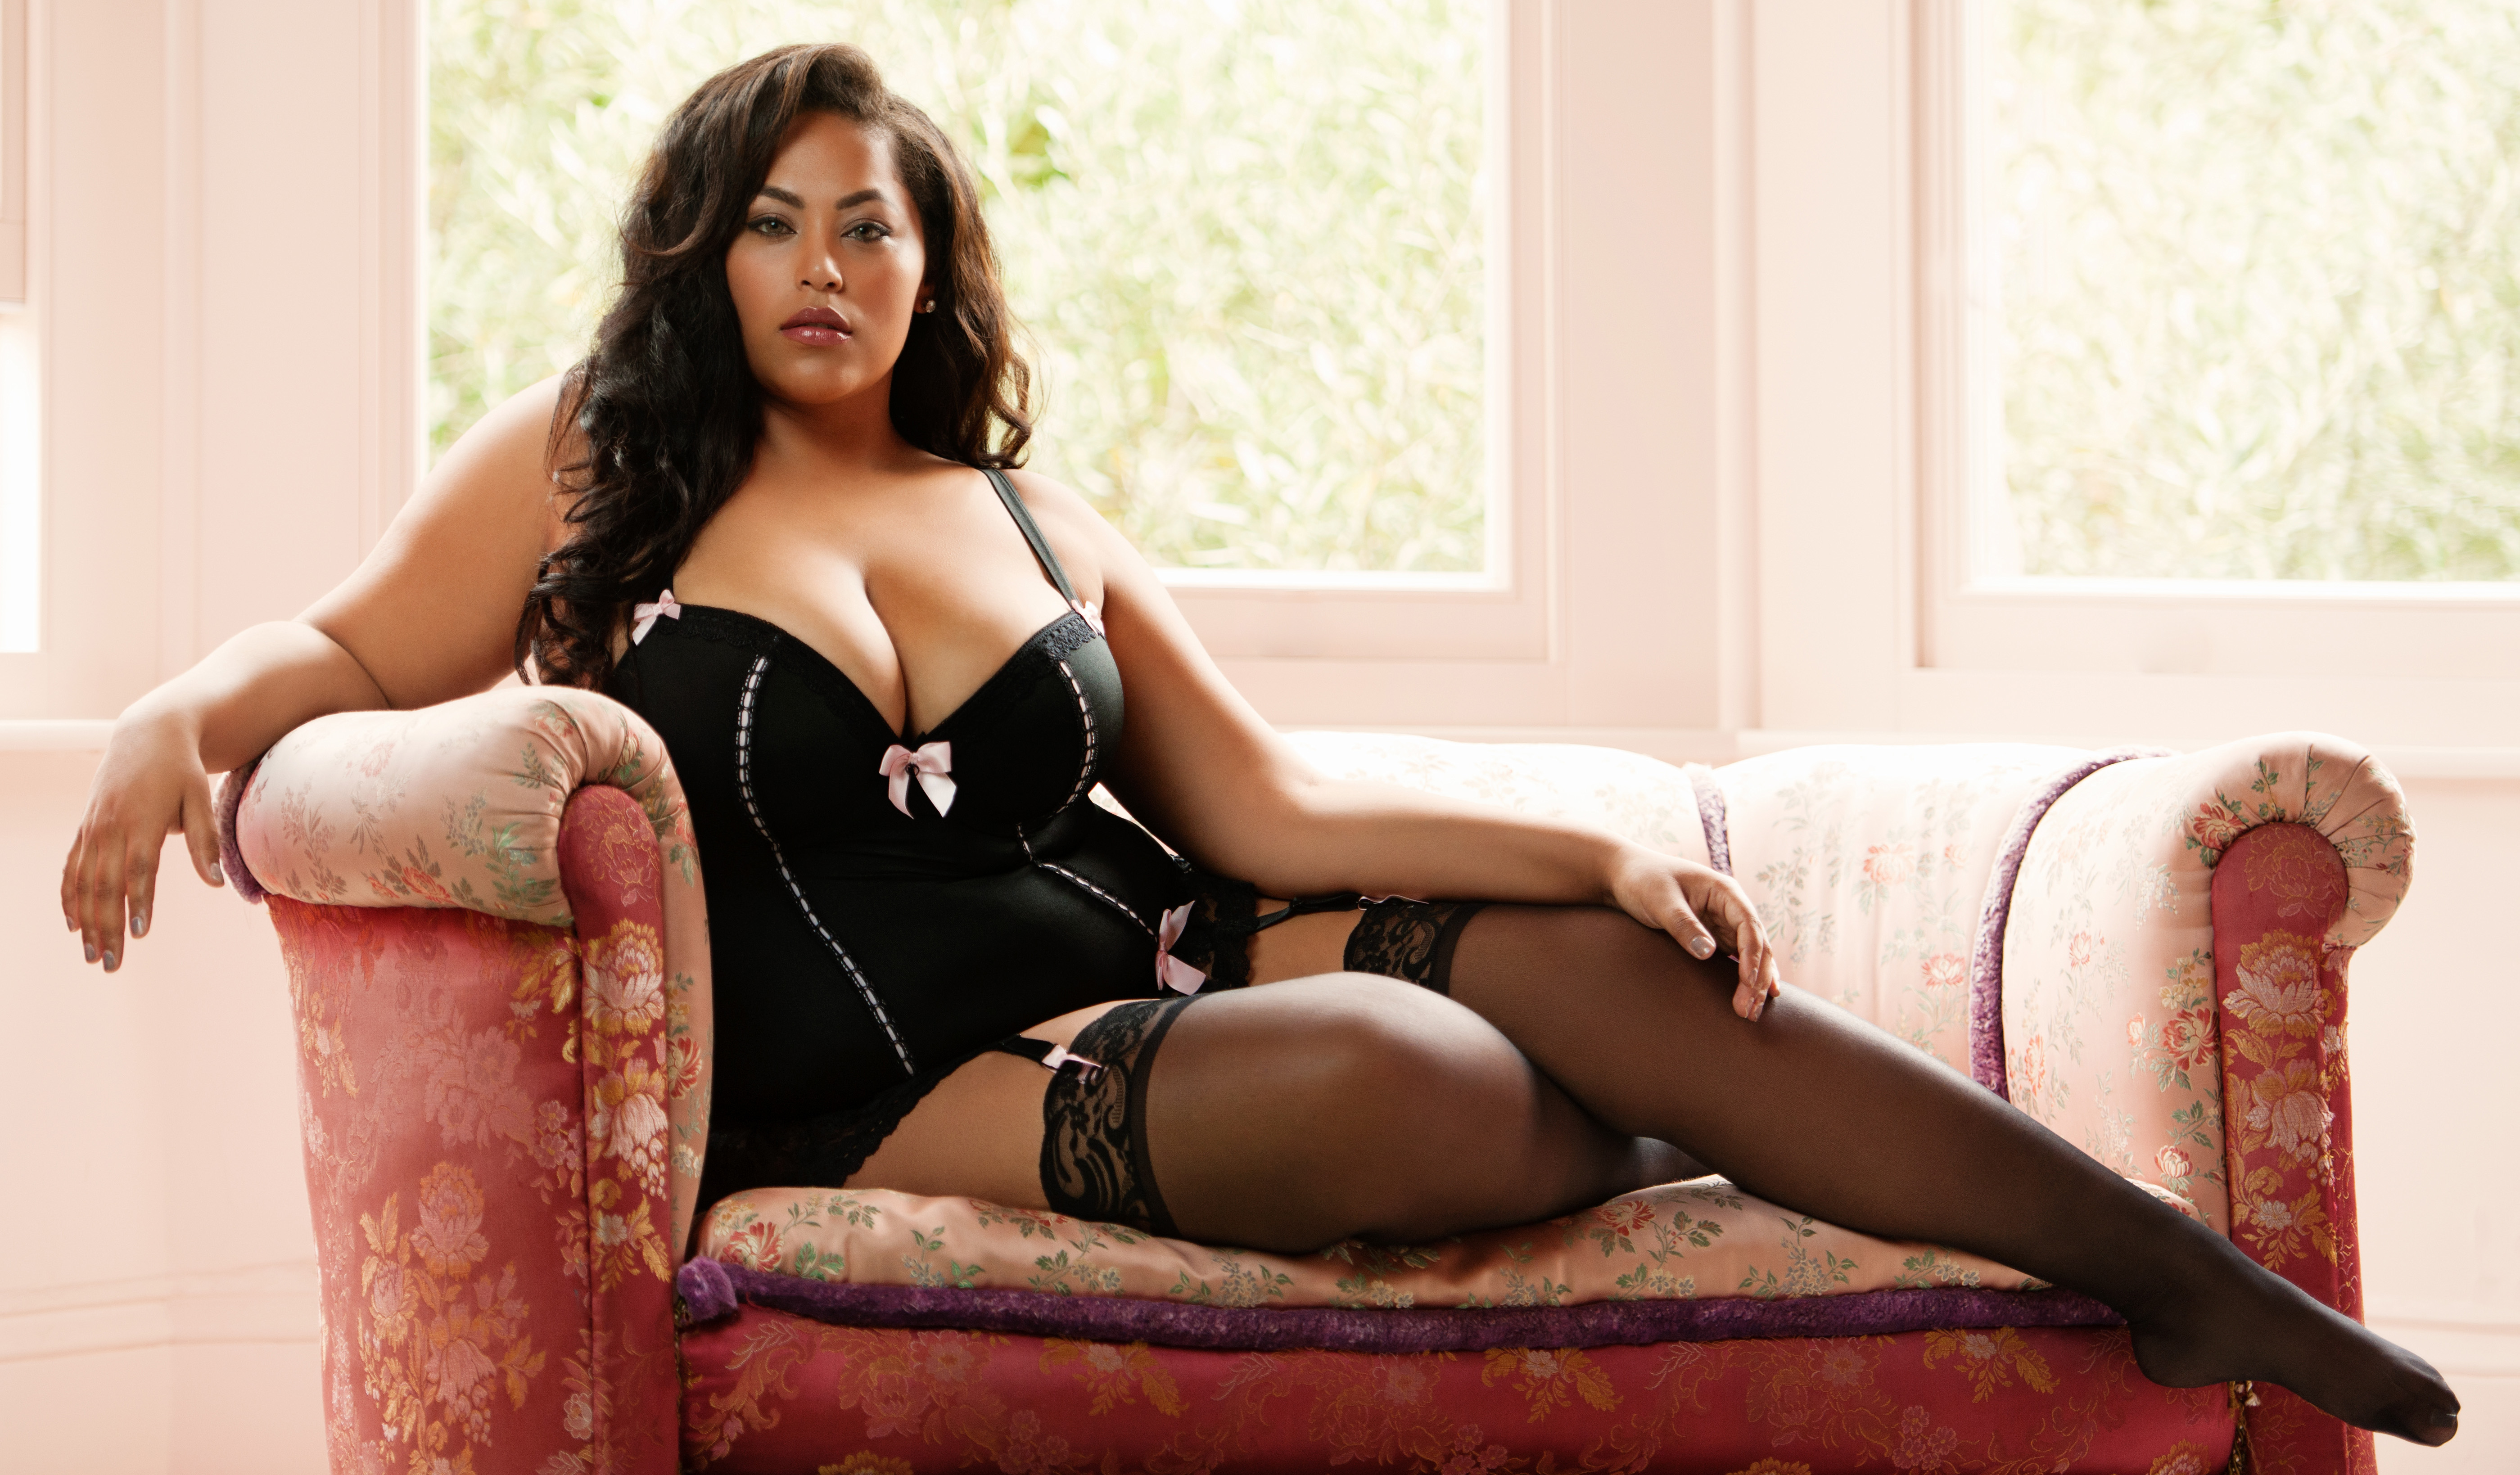 celebrate-body-curves-lingerie